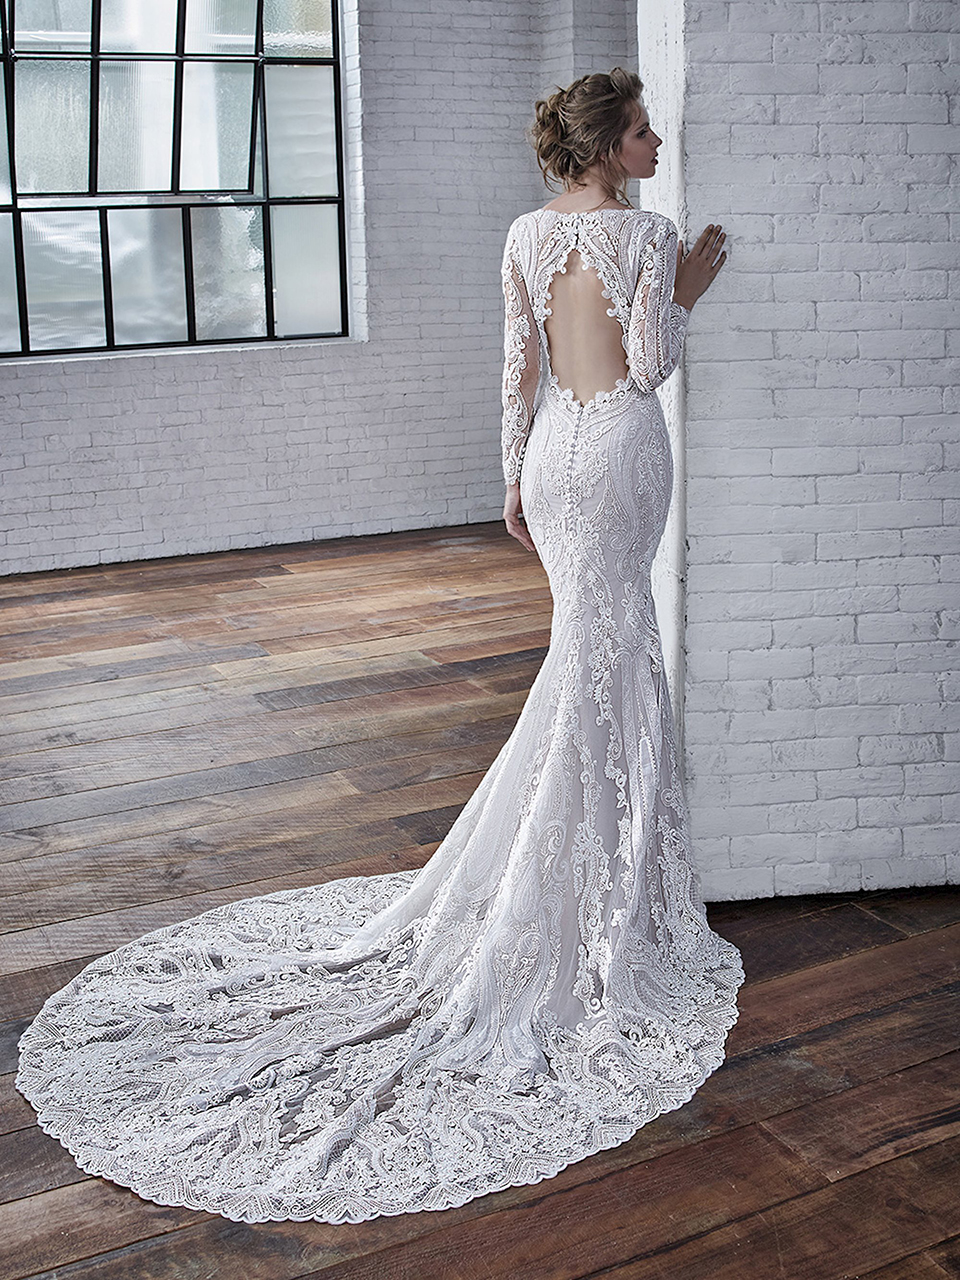 Callista:  This stunning fit and flare beautifully blends a corded lace with embroidered lace, giving the gown gorgeous dimension. The three-quarter sleeves and key-hole back emphasize the classic nature of this beauty.